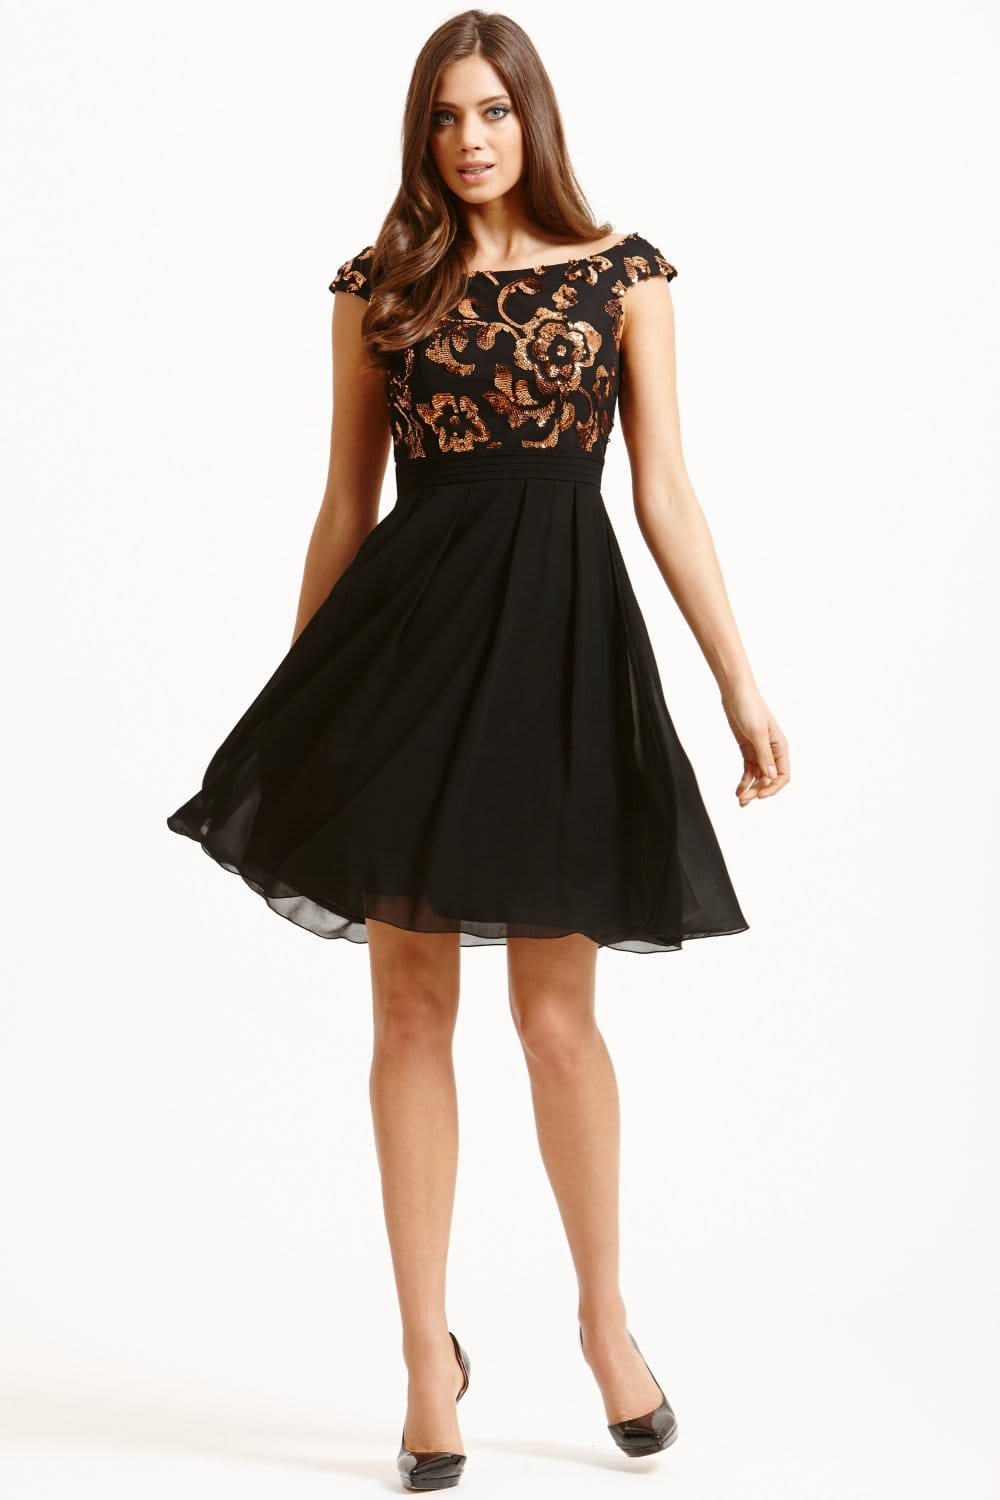 Black And Bronze Fit And Flare Dress From Little Mistress Uk